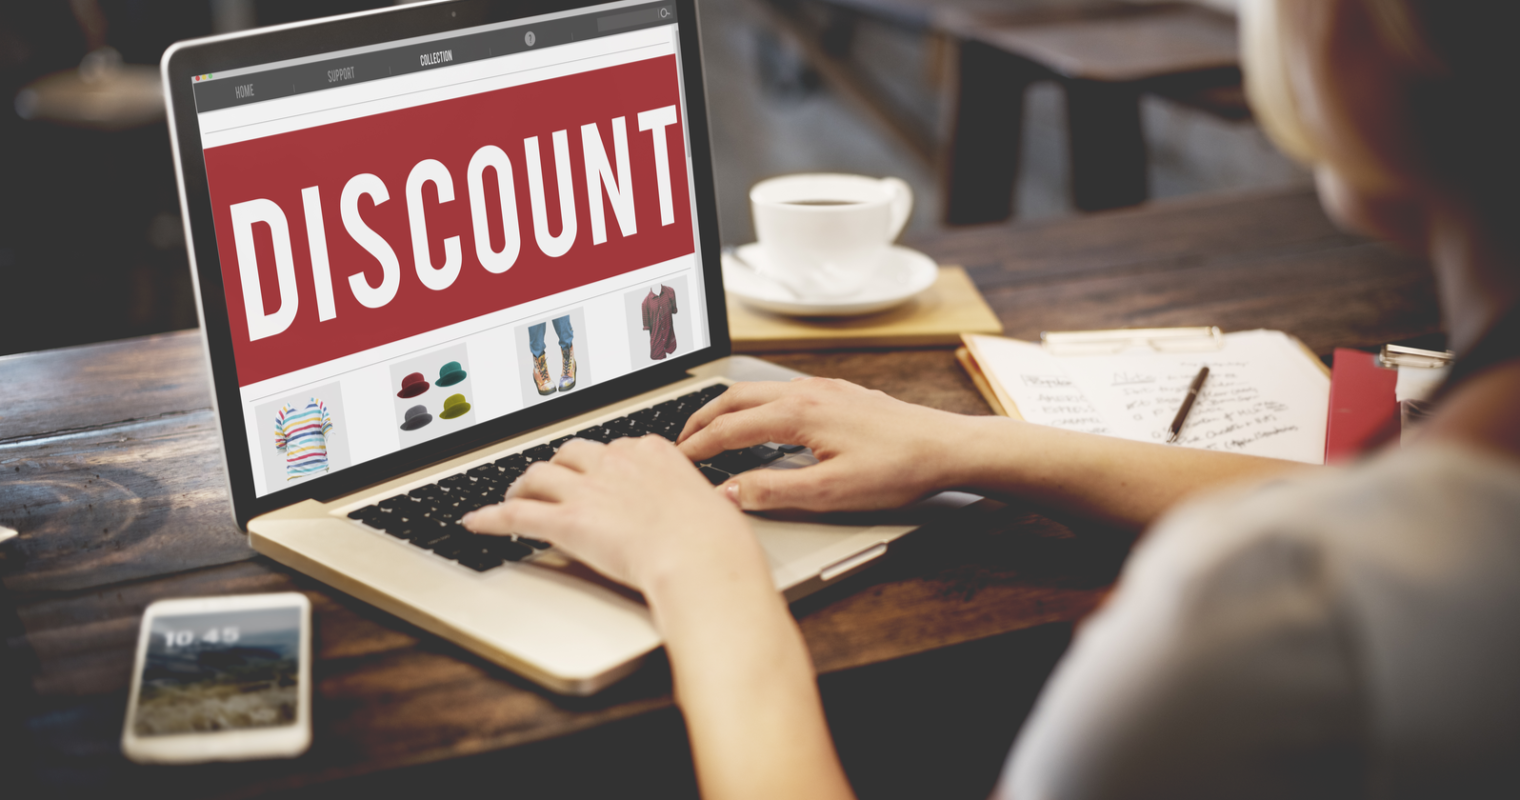 Google My Business Listings Can Offer Discounts to New Followers